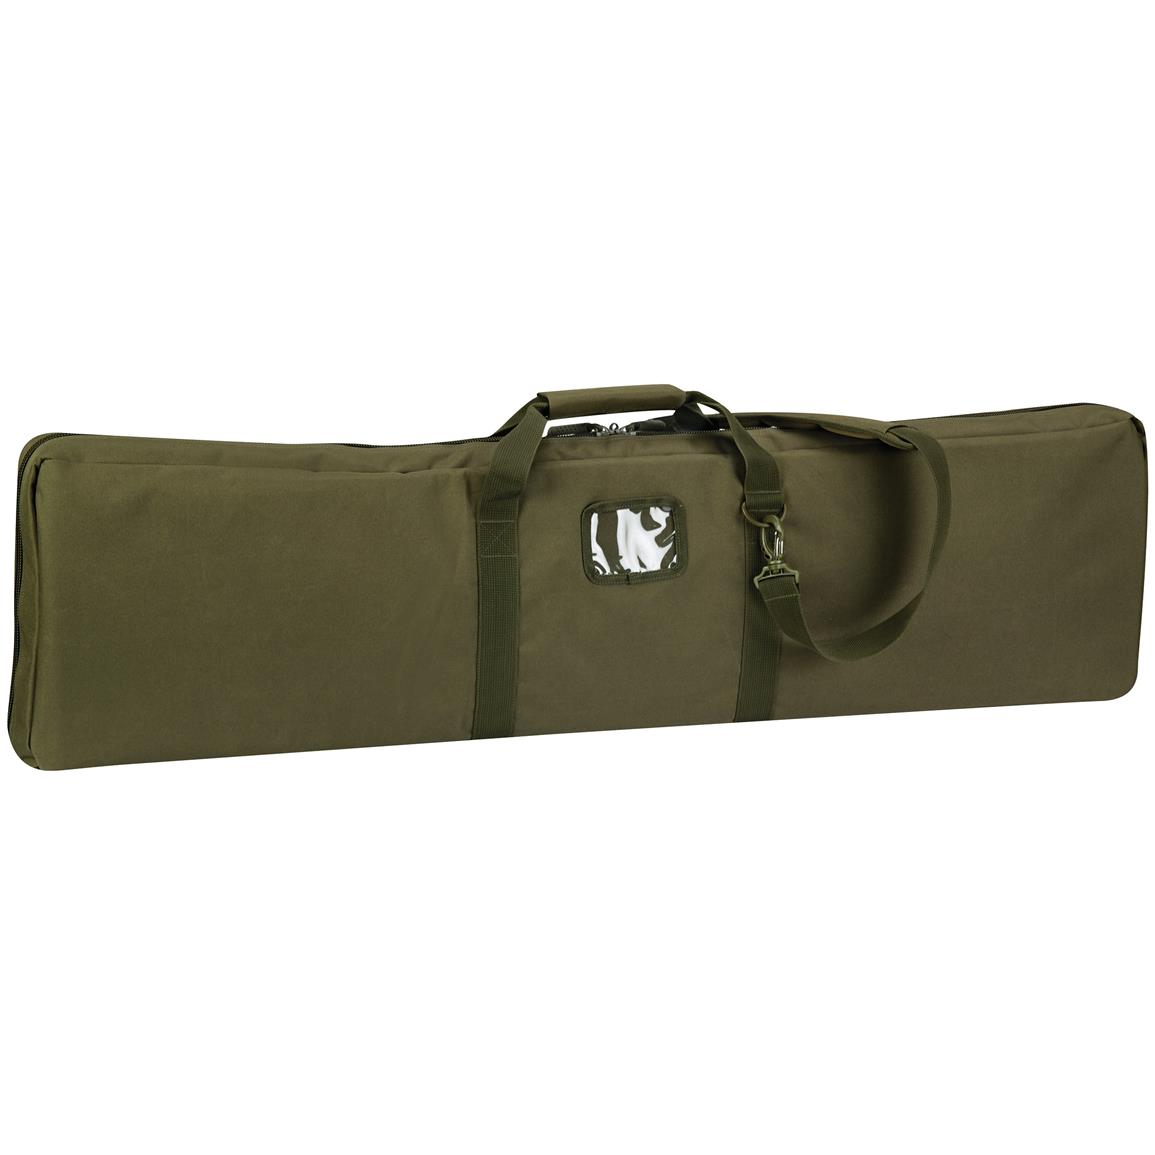 Padded and adjustable shoulder strap for easy transport